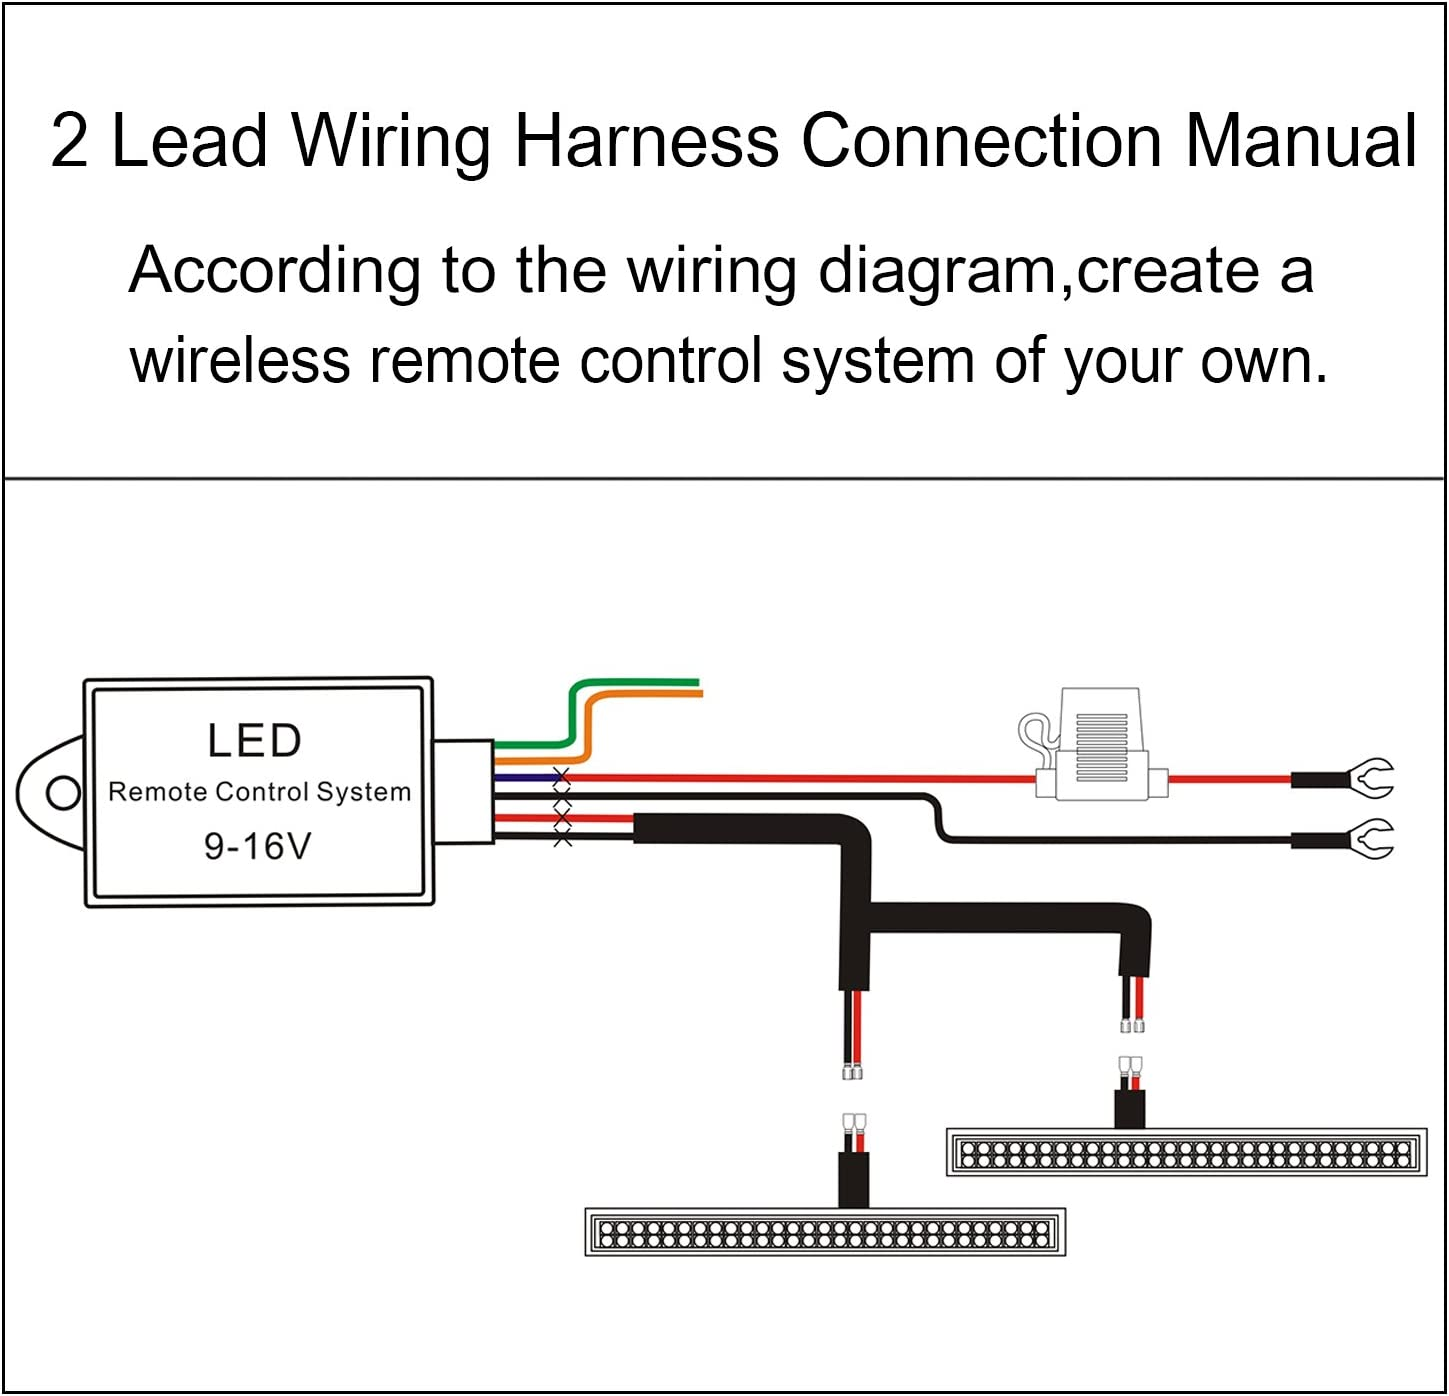 Led Light Bar Remote Control Wire Harness Wireless Remote Control Wire Harness For Led Light Bar Driving Light Fog Light Pod Light Work Light 16 Gauge Be Useful For 12v And 24v Jihe 5559042152